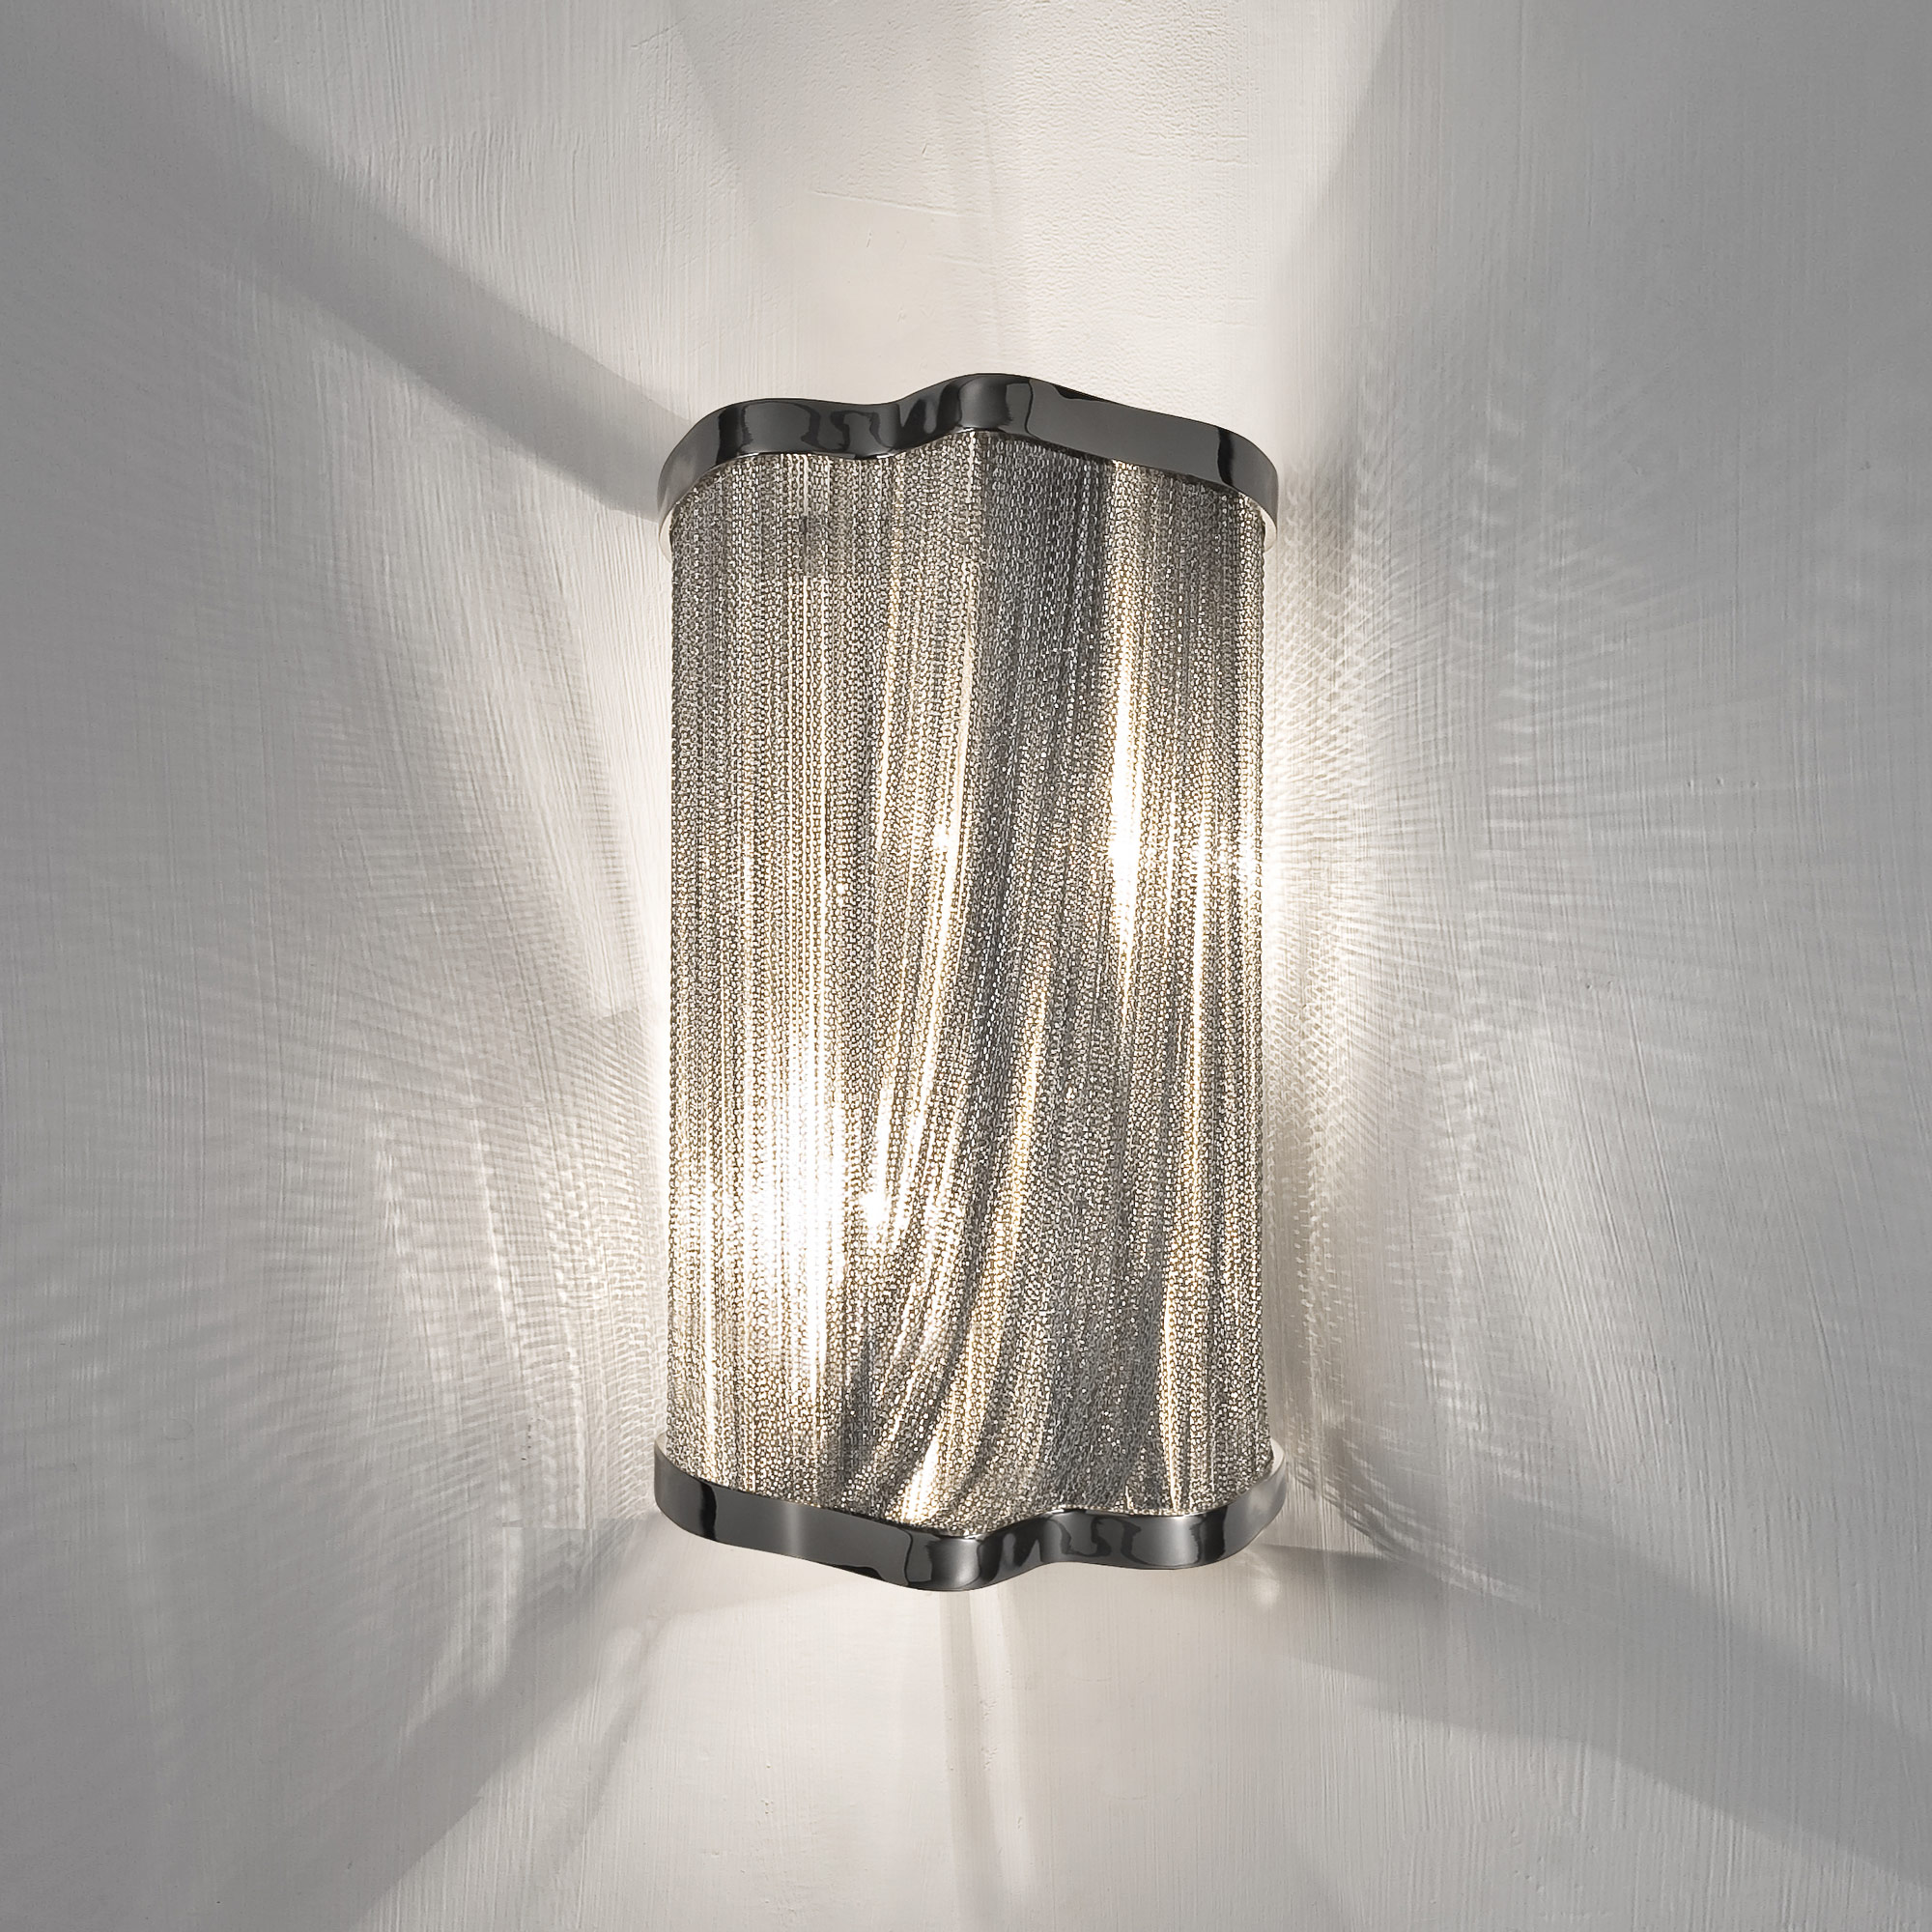 Atlantis Small Wall Sconce by Terzani USA | 0J04AE7C8A on Small Wall Sconce Light id=67519